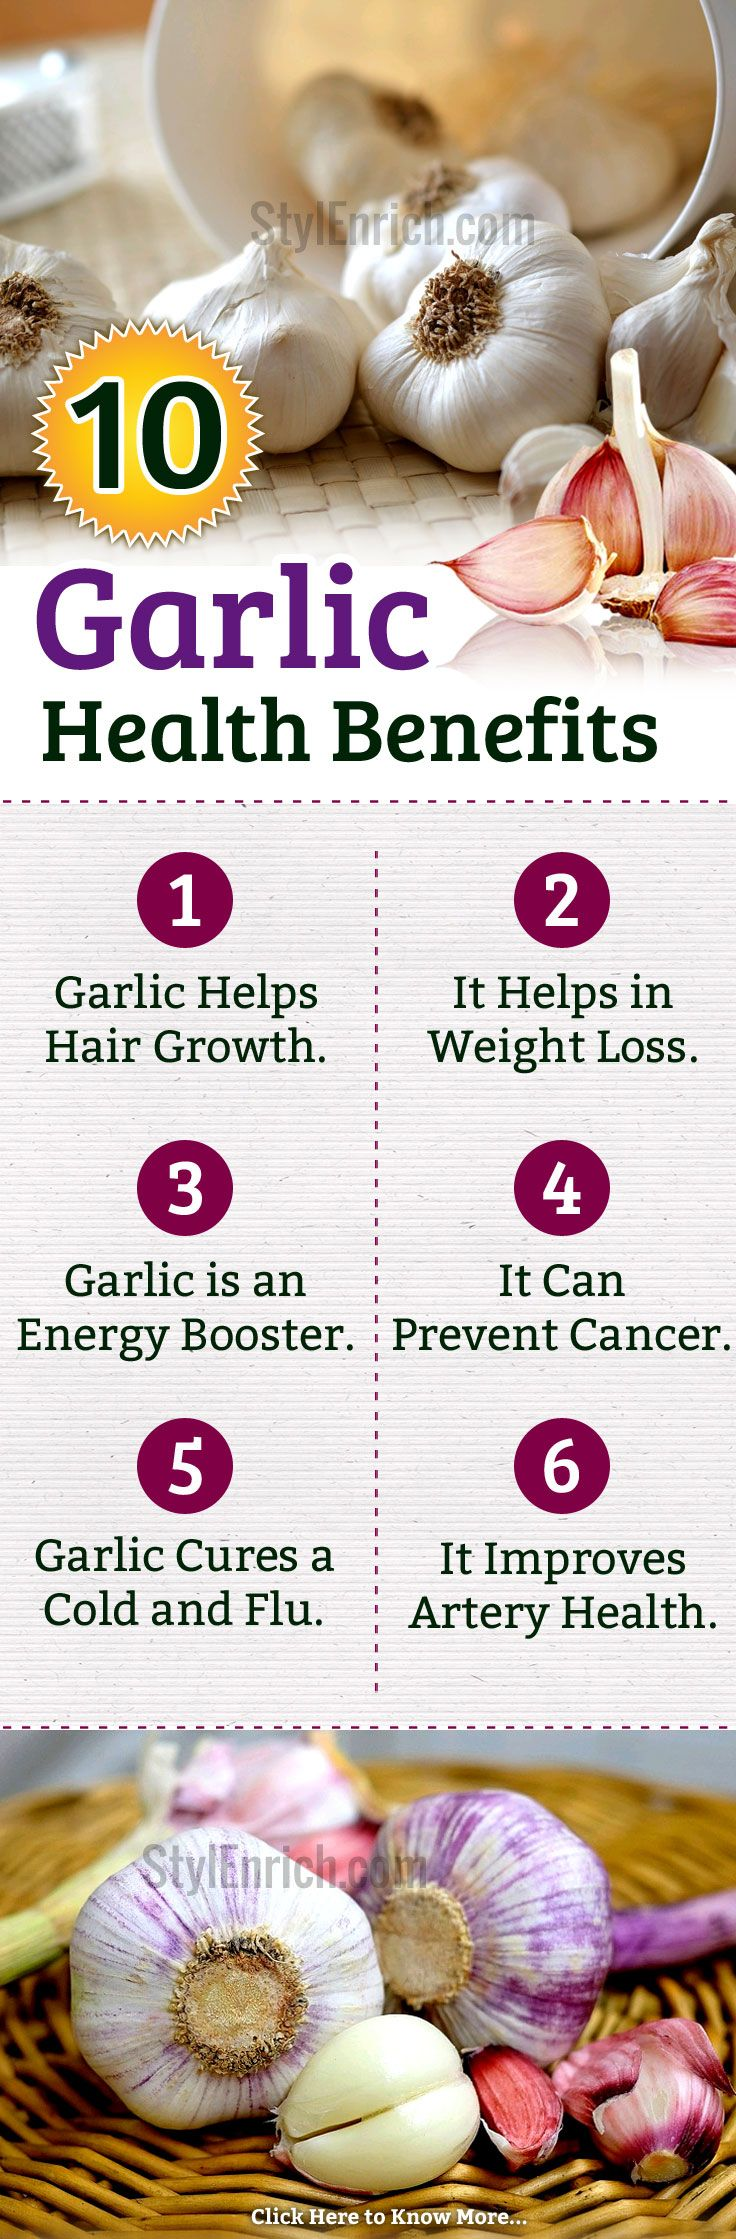 #Garlic is one of the most common #Herbs that is used to not just flavour your food, but also used as a medicine to treat myriad health ailments. Here we present to you a few of the many #HealthBenefits of garlic that you did not know before!